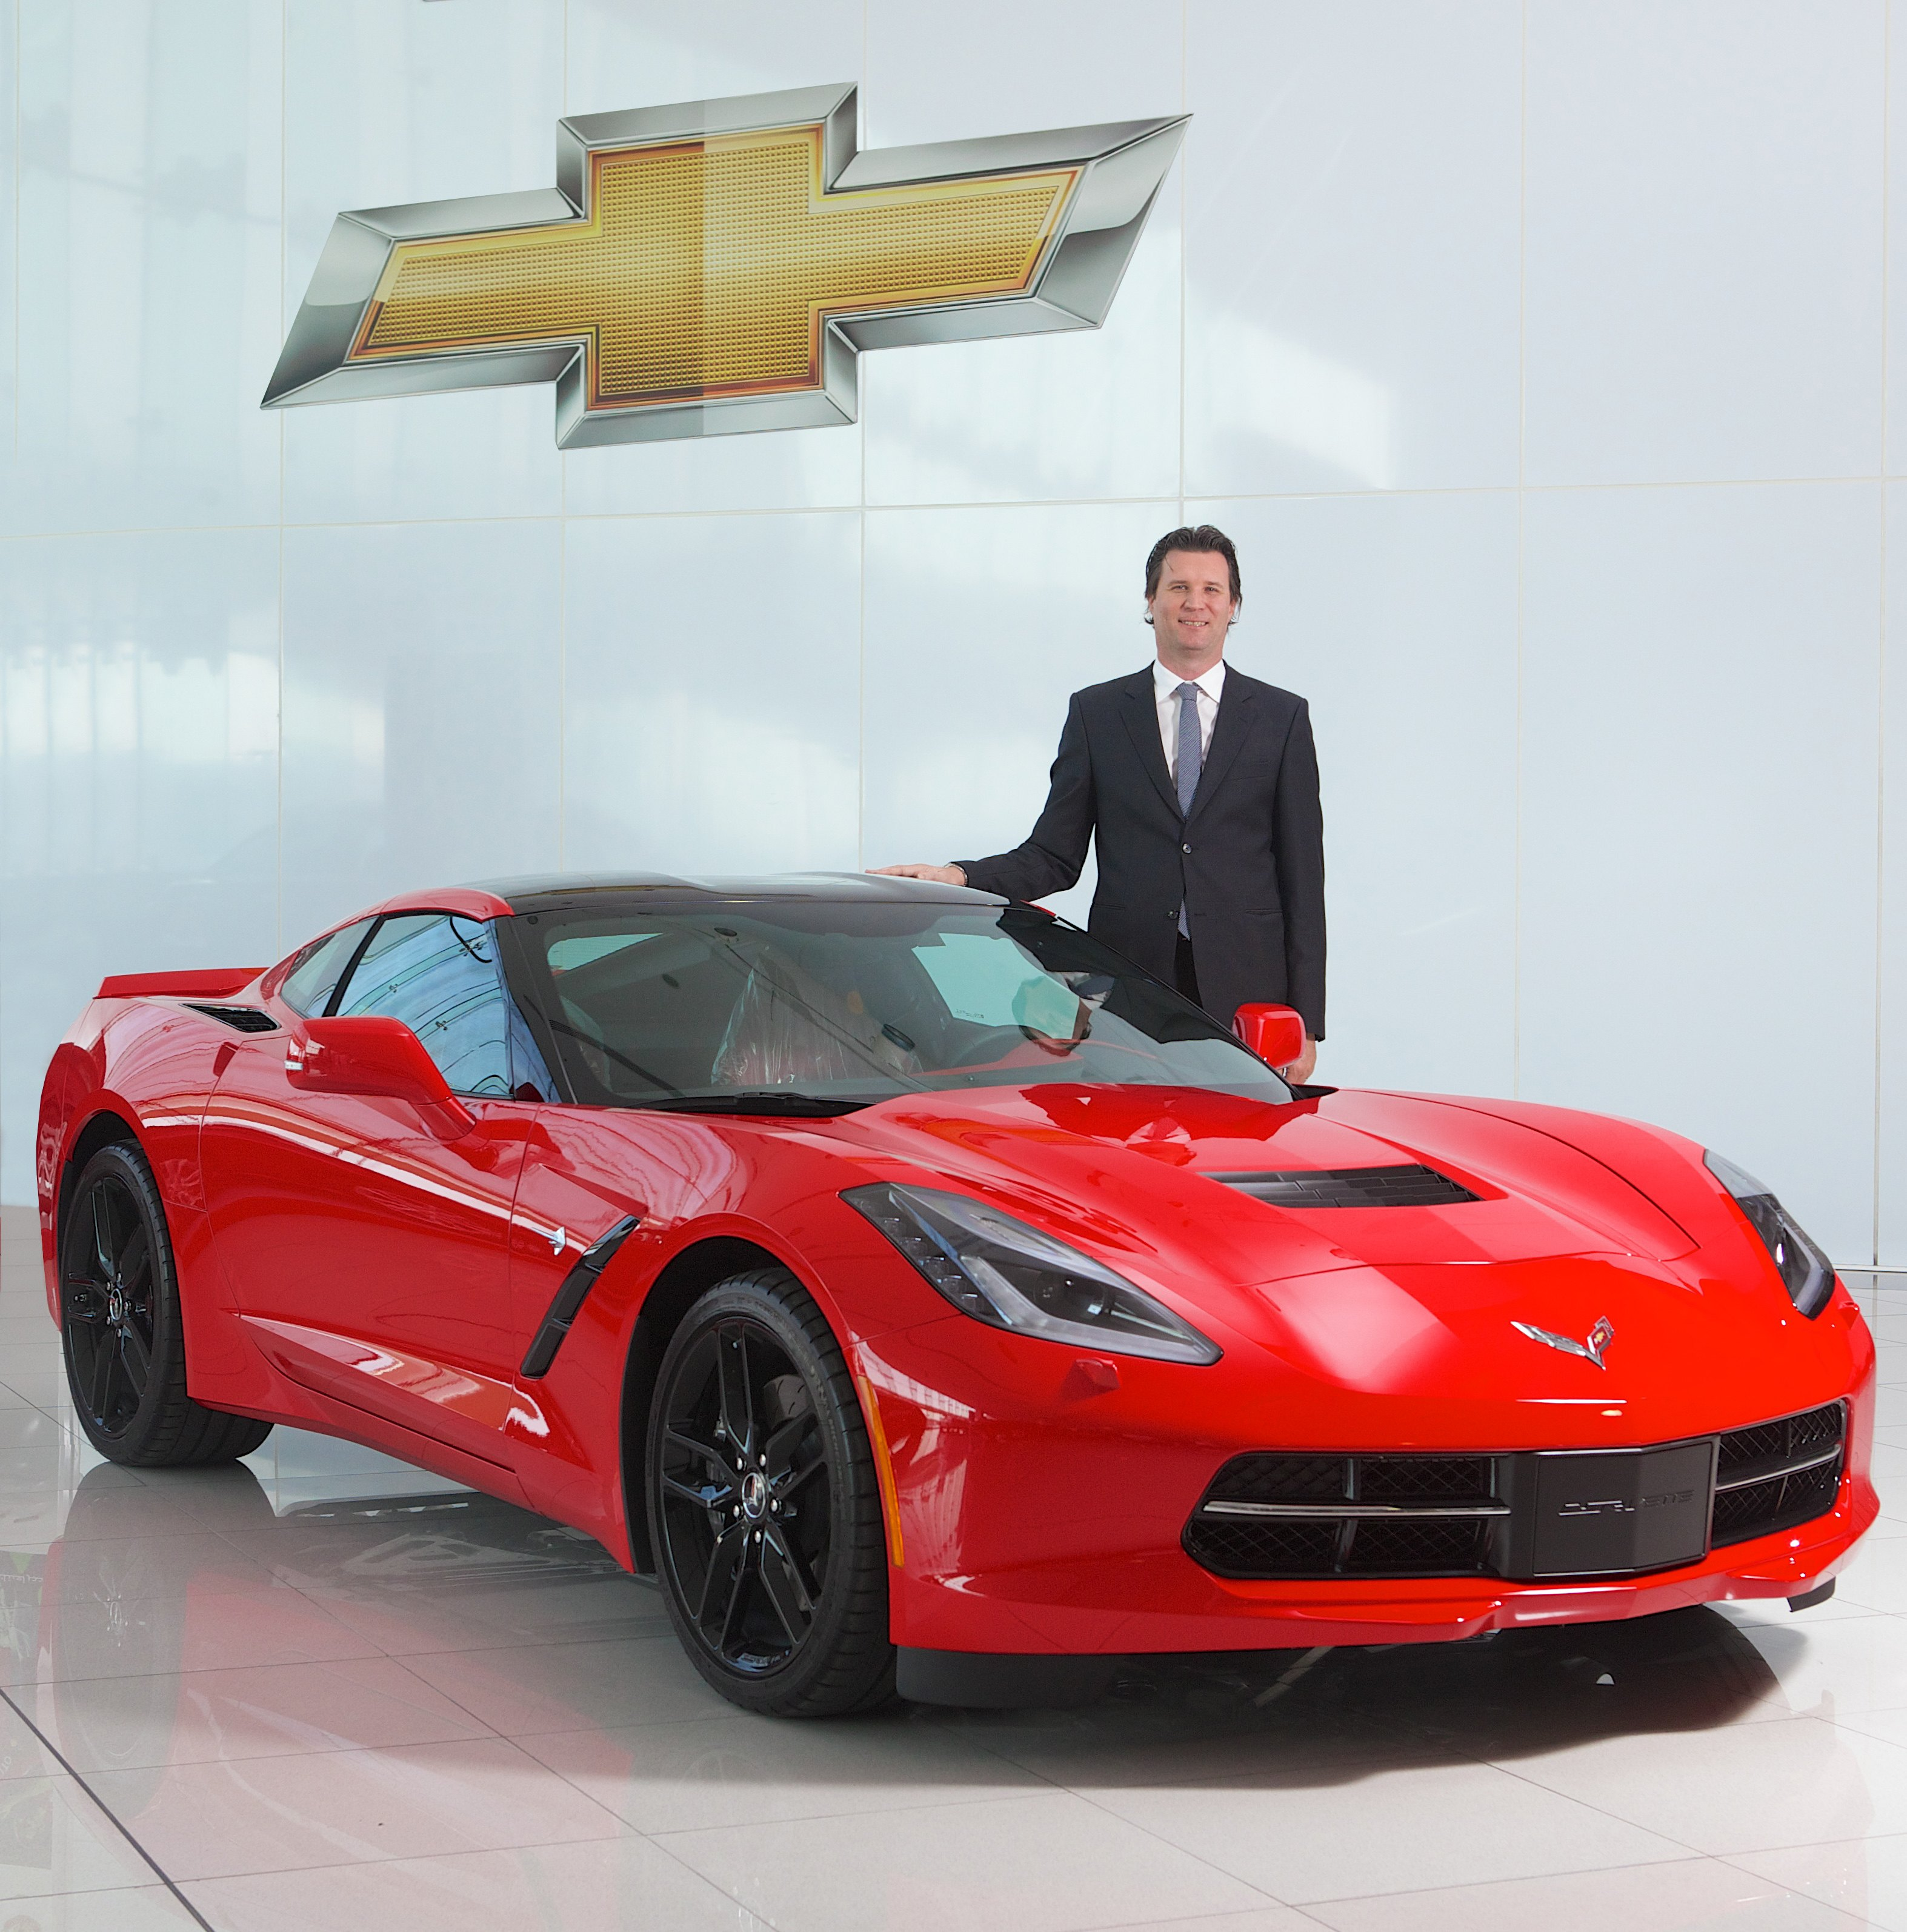 2014-Chevrolet-Corvette-Stingray-Wins-Top-Muscle-Car-Honor